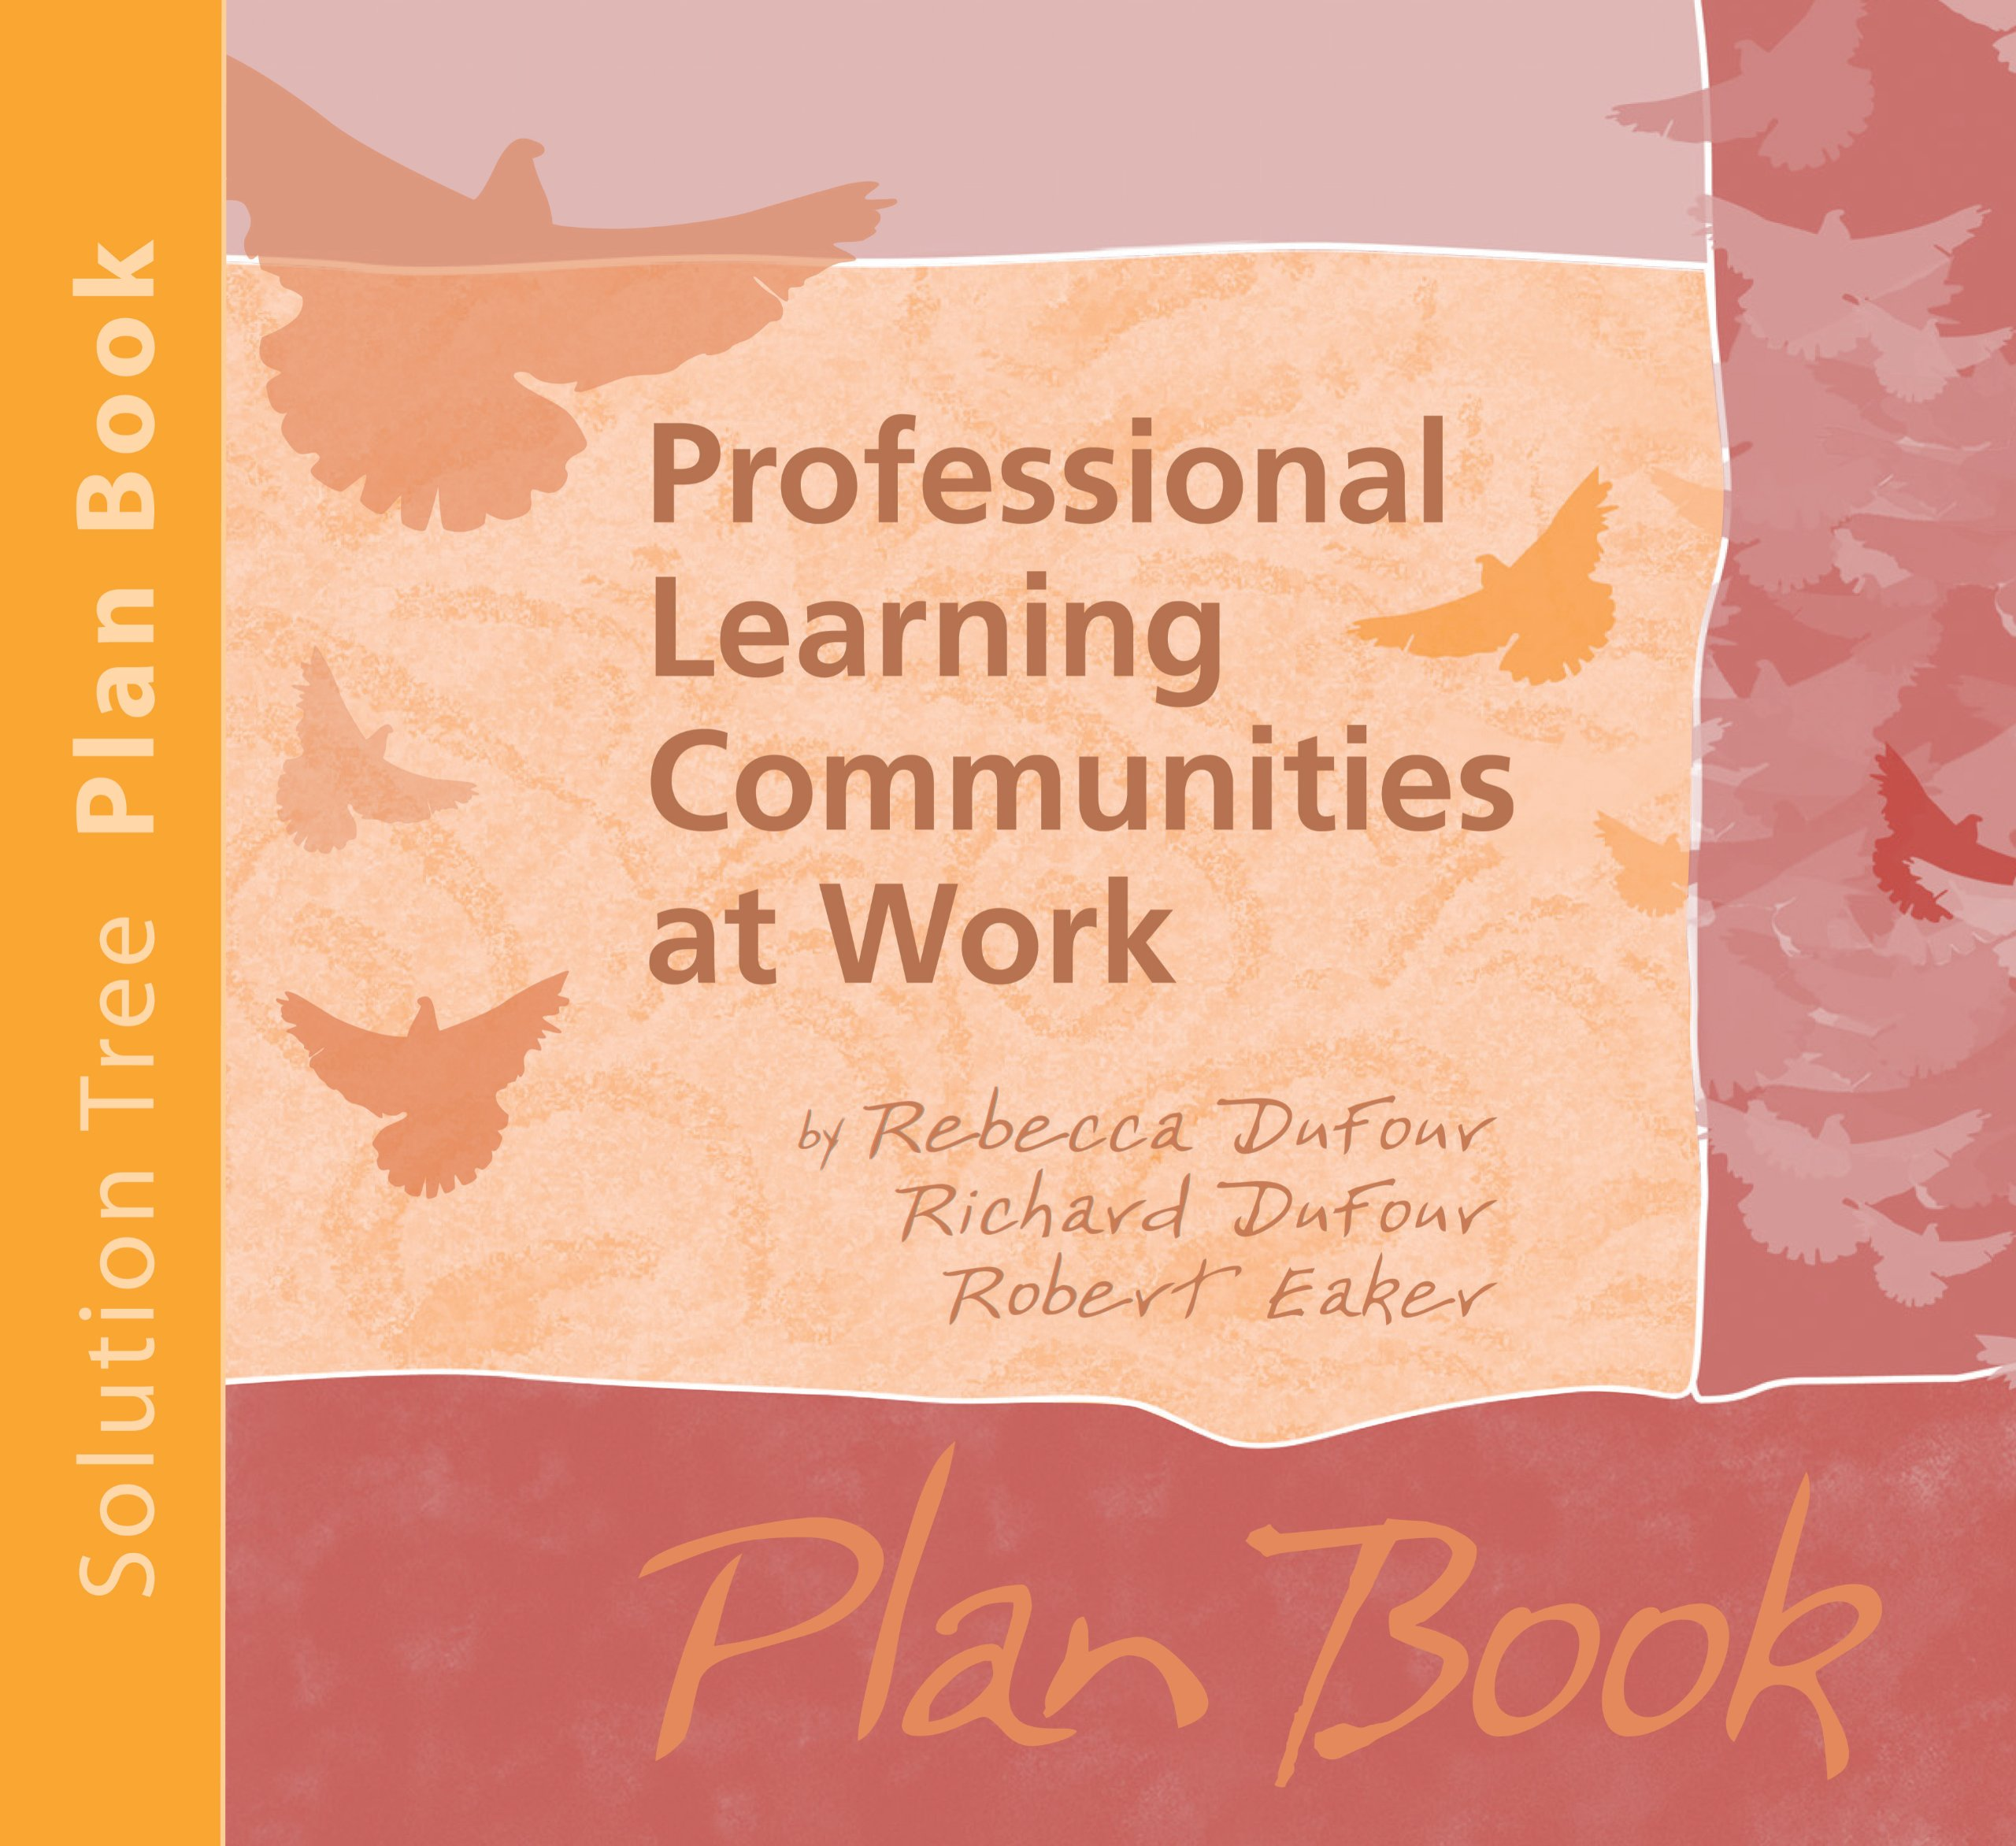 professional learning communities at work plan book rebecca professional learning communities at work plan book rebecca dufour richard dufour robert eaker 9781932127959 com books